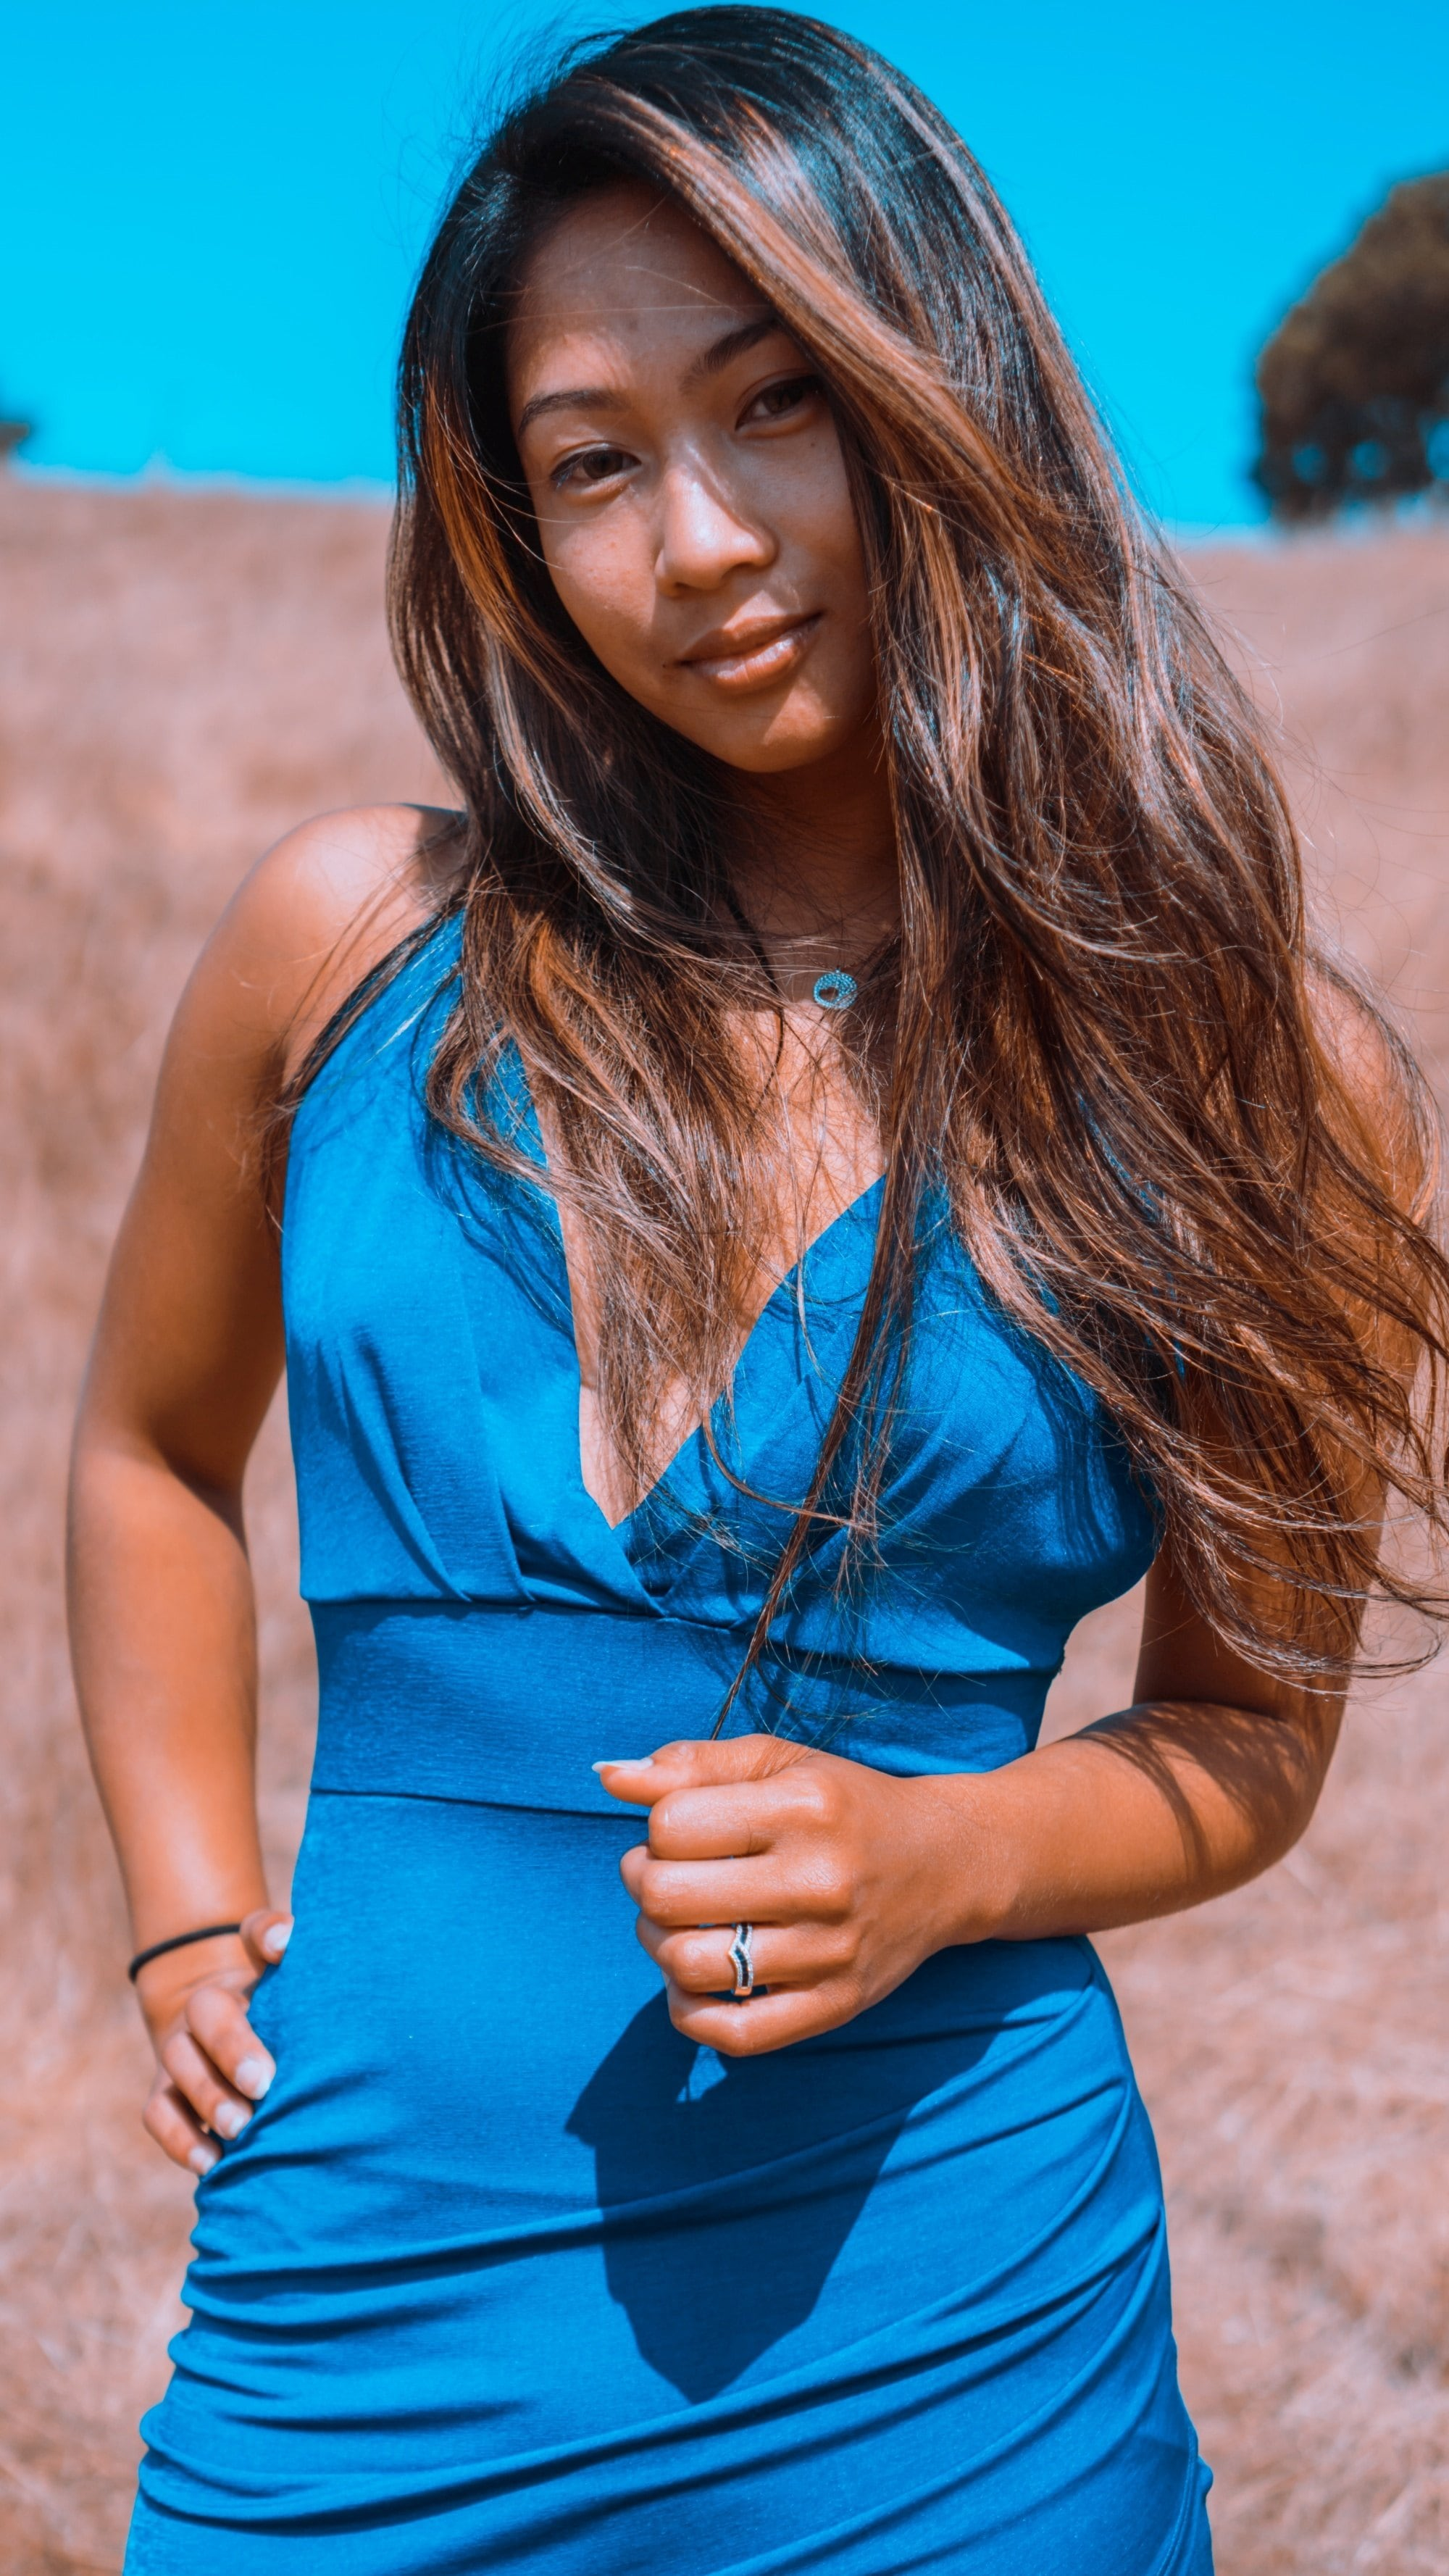 Asian woman with morena skin and long dark hair wearing a blue dress